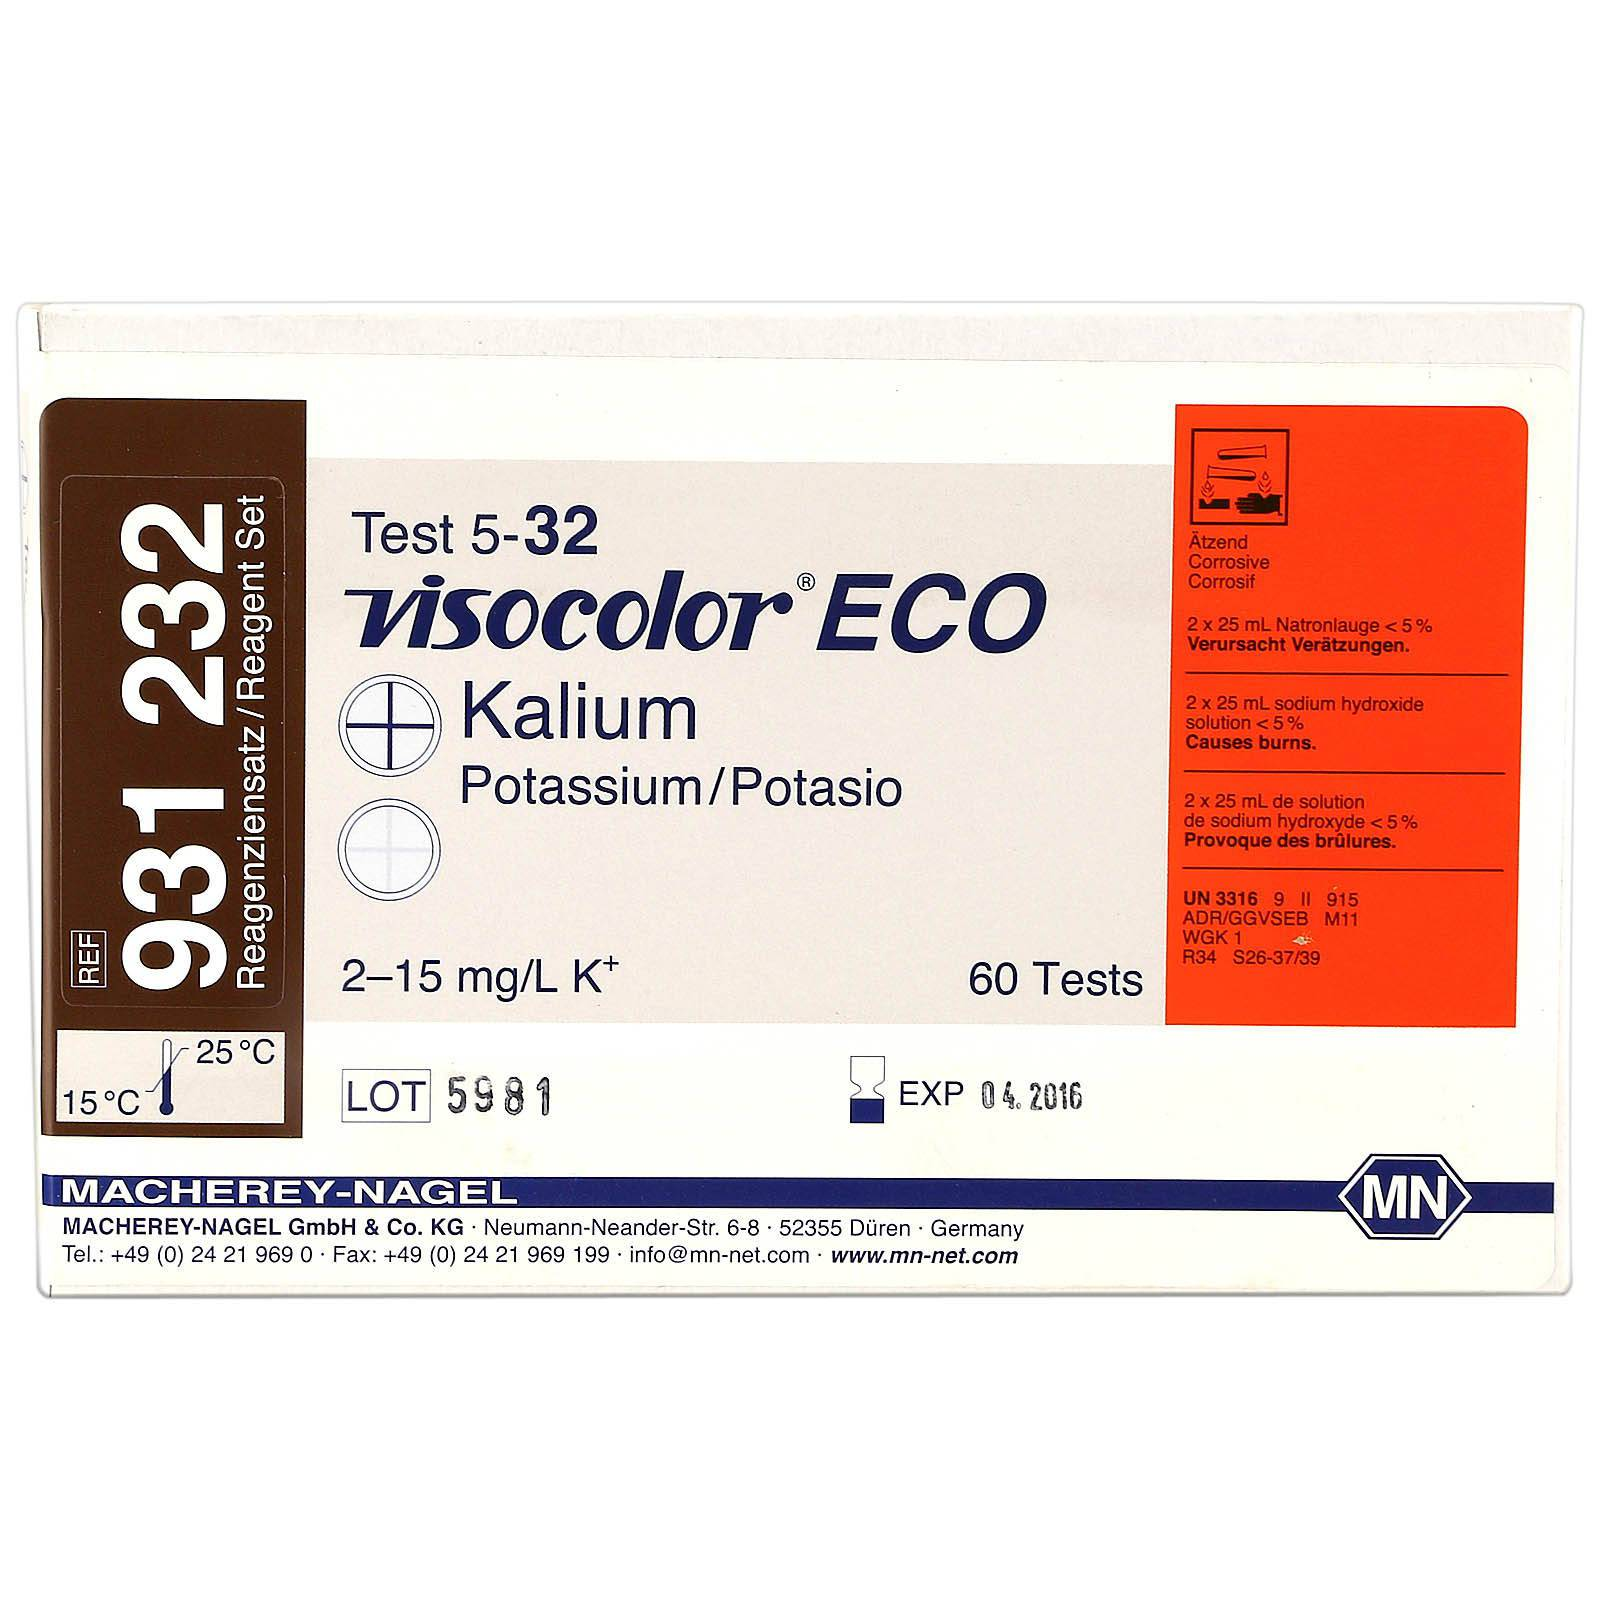 Macherey-Nagel - Visocolor ECO - Kalium - Test